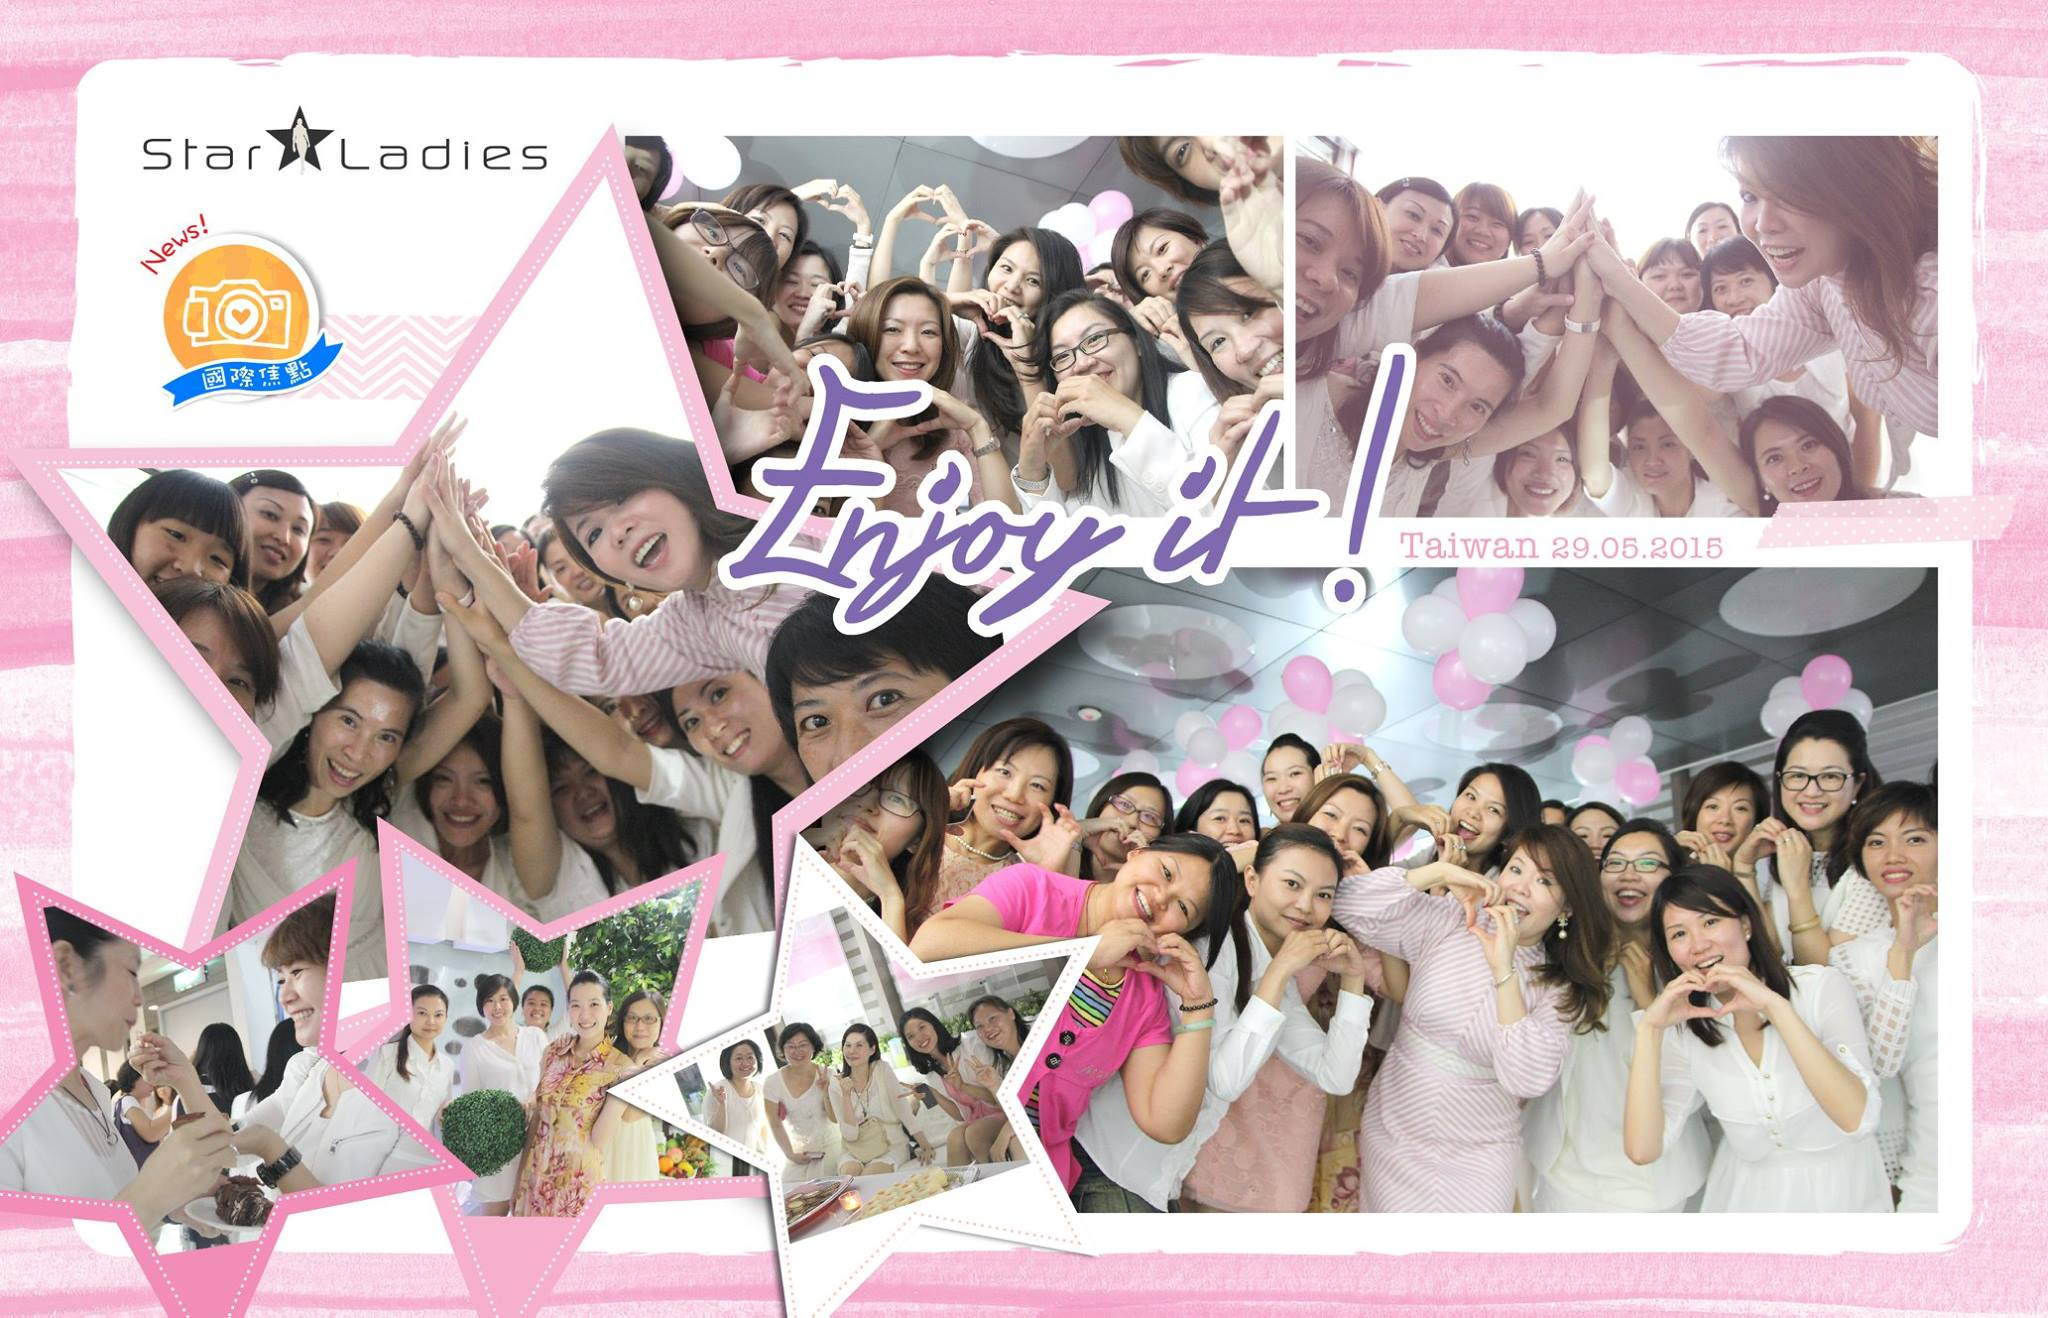 StarLadies Dearies, remember to face everyday with an right attitude~